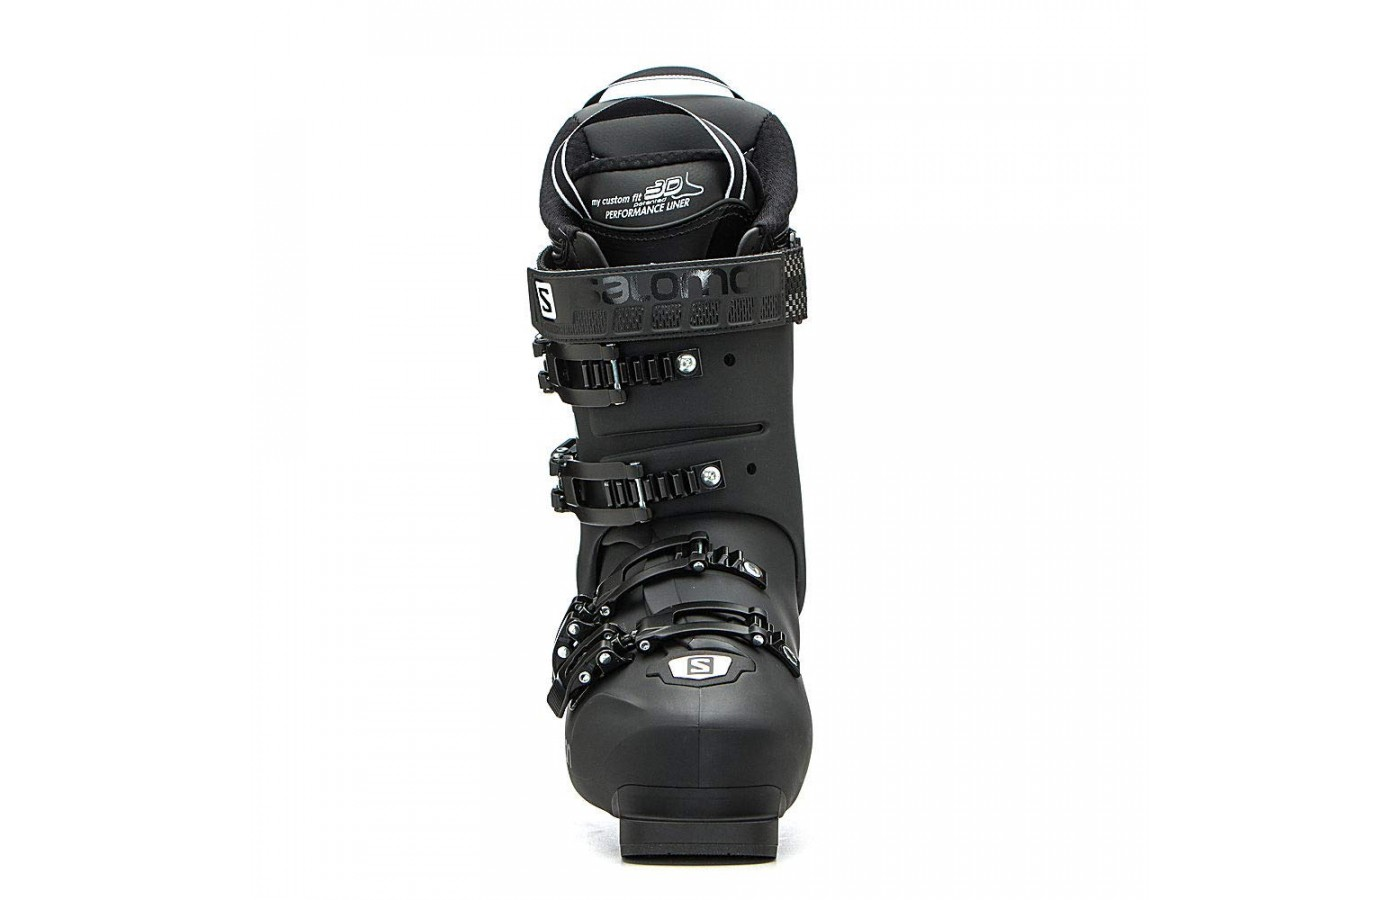 The Salomon X Pro 100 has 4 MM aluminum buckles for better and secure comfort.